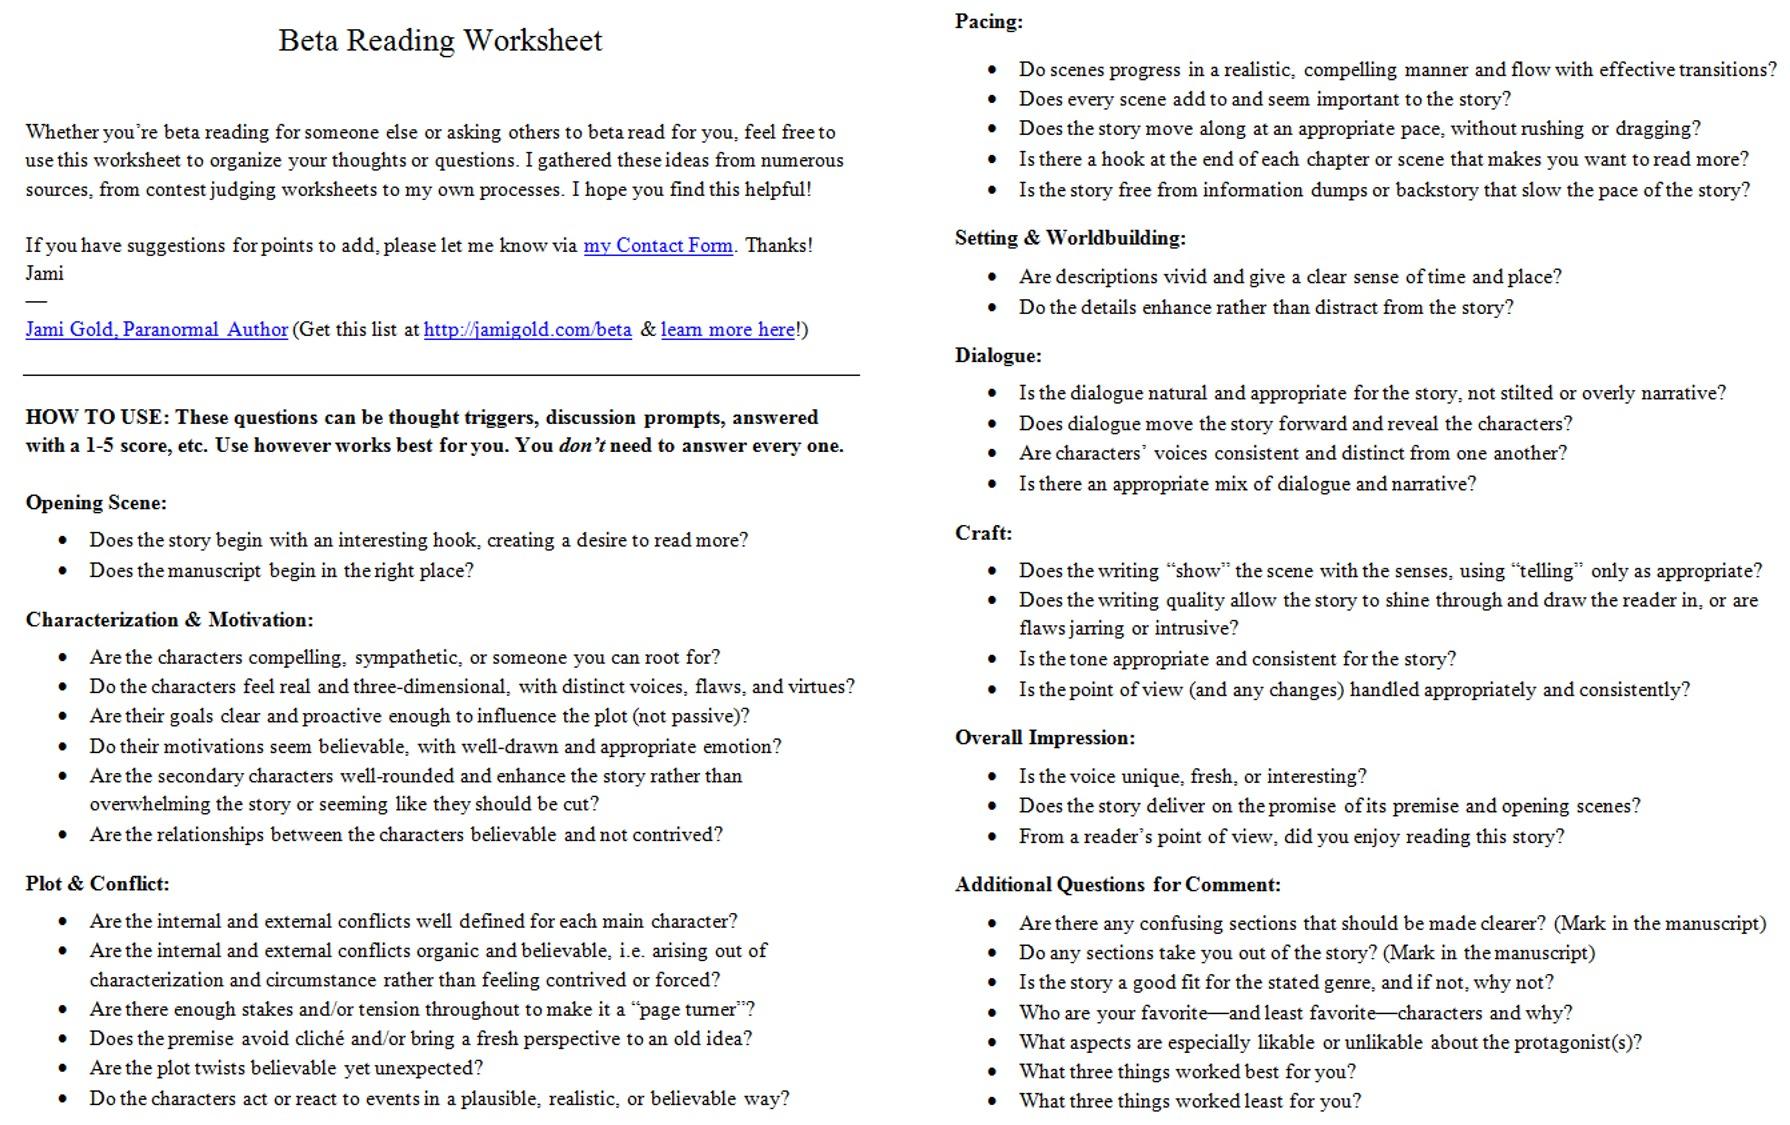 Proatmealus  Winning Worksheets For Writers  Jami Gold Paranormal Author With Extraordinary Screen Shot Of The Twopage Beta Reading Worksheet With Enchanting Instruction Worksheets Also Worksheet For Primary  In Addition Th Grade Math Worksheets Free Printable And Finding Fractions Of Amounts Worksheets As Well As Worksheets On Rotations Additionally Simple Ratio And Proportion Worksheets From Jamigoldcom With Proatmealus  Extraordinary Worksheets For Writers  Jami Gold Paranormal Author With Enchanting Screen Shot Of The Twopage Beta Reading Worksheet And Winning Instruction Worksheets Also Worksheet For Primary  In Addition Th Grade Math Worksheets Free Printable From Jamigoldcom